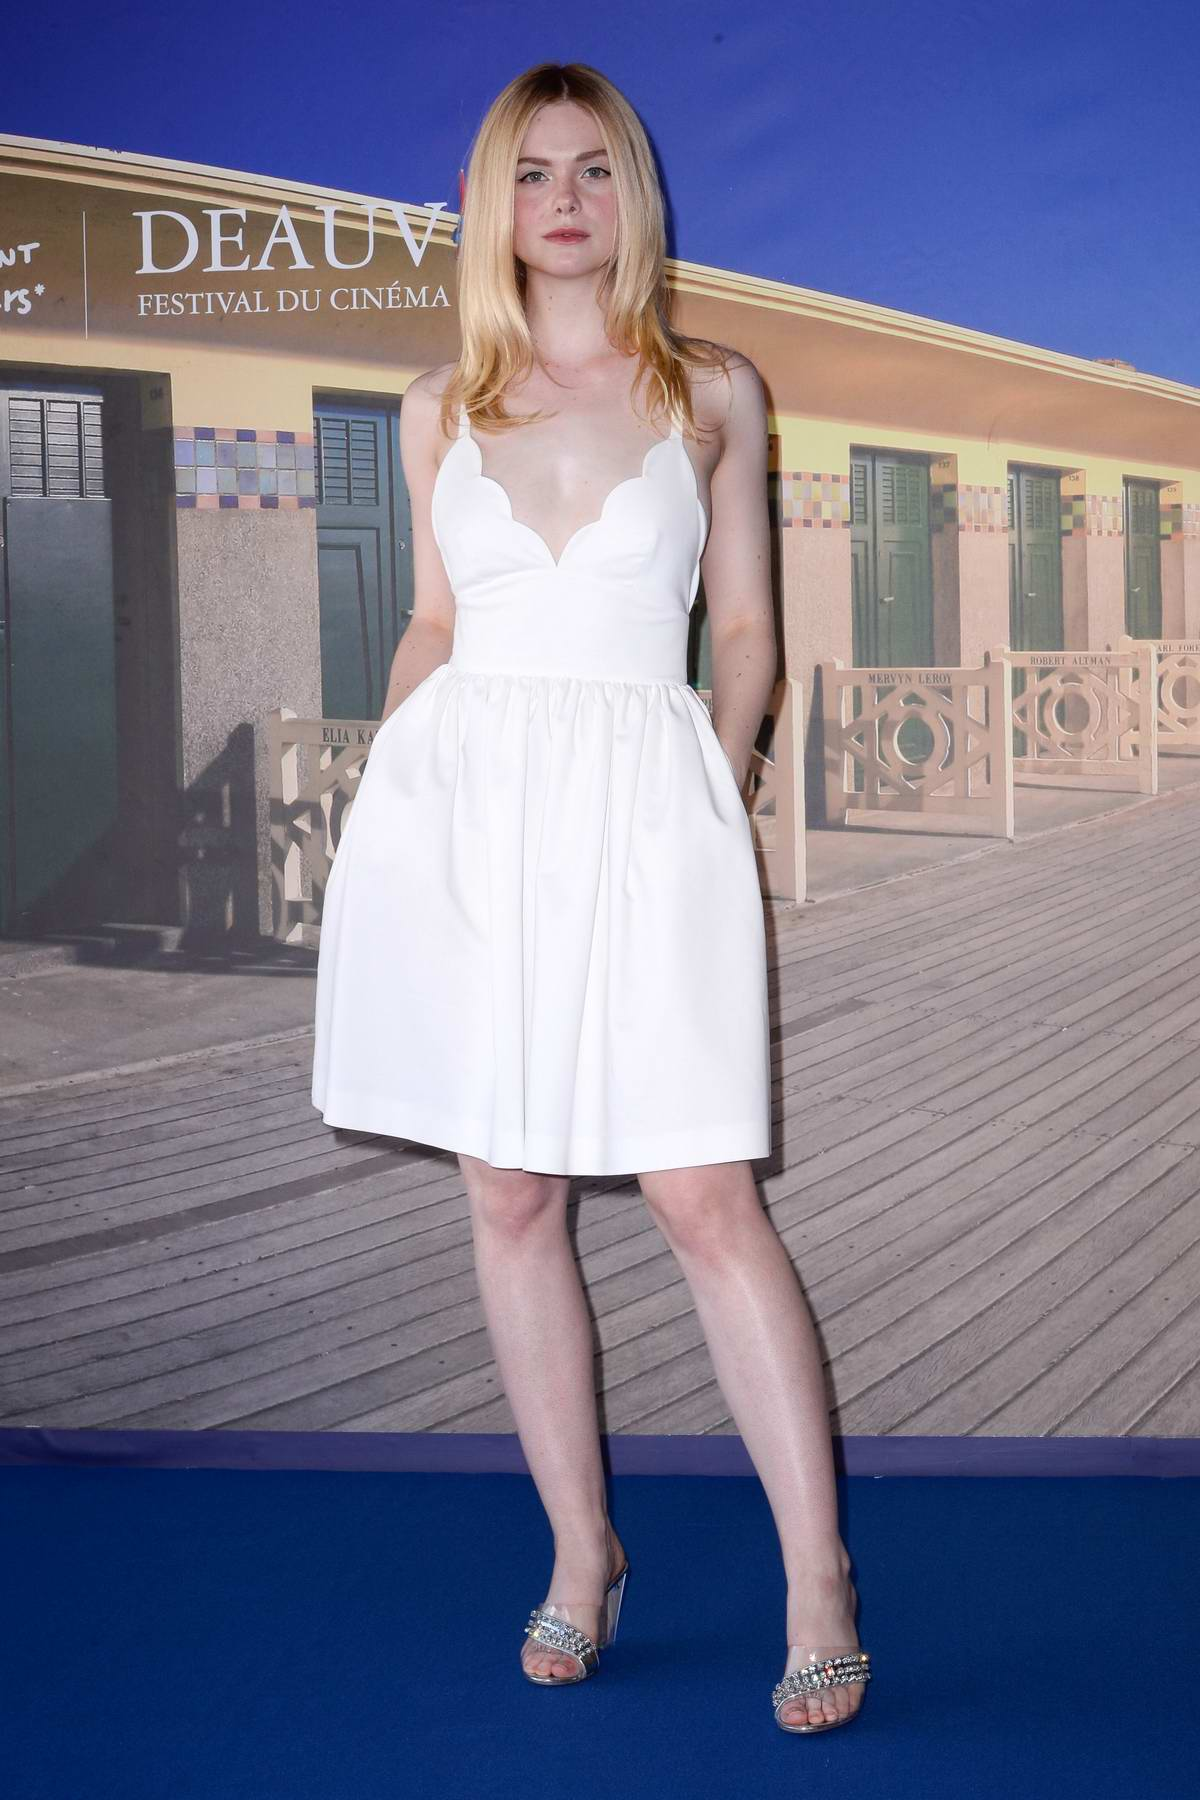 Elle Fanning attends 'Galveston' photocall during the 44th Deauville American Film Festival in Deauville, France